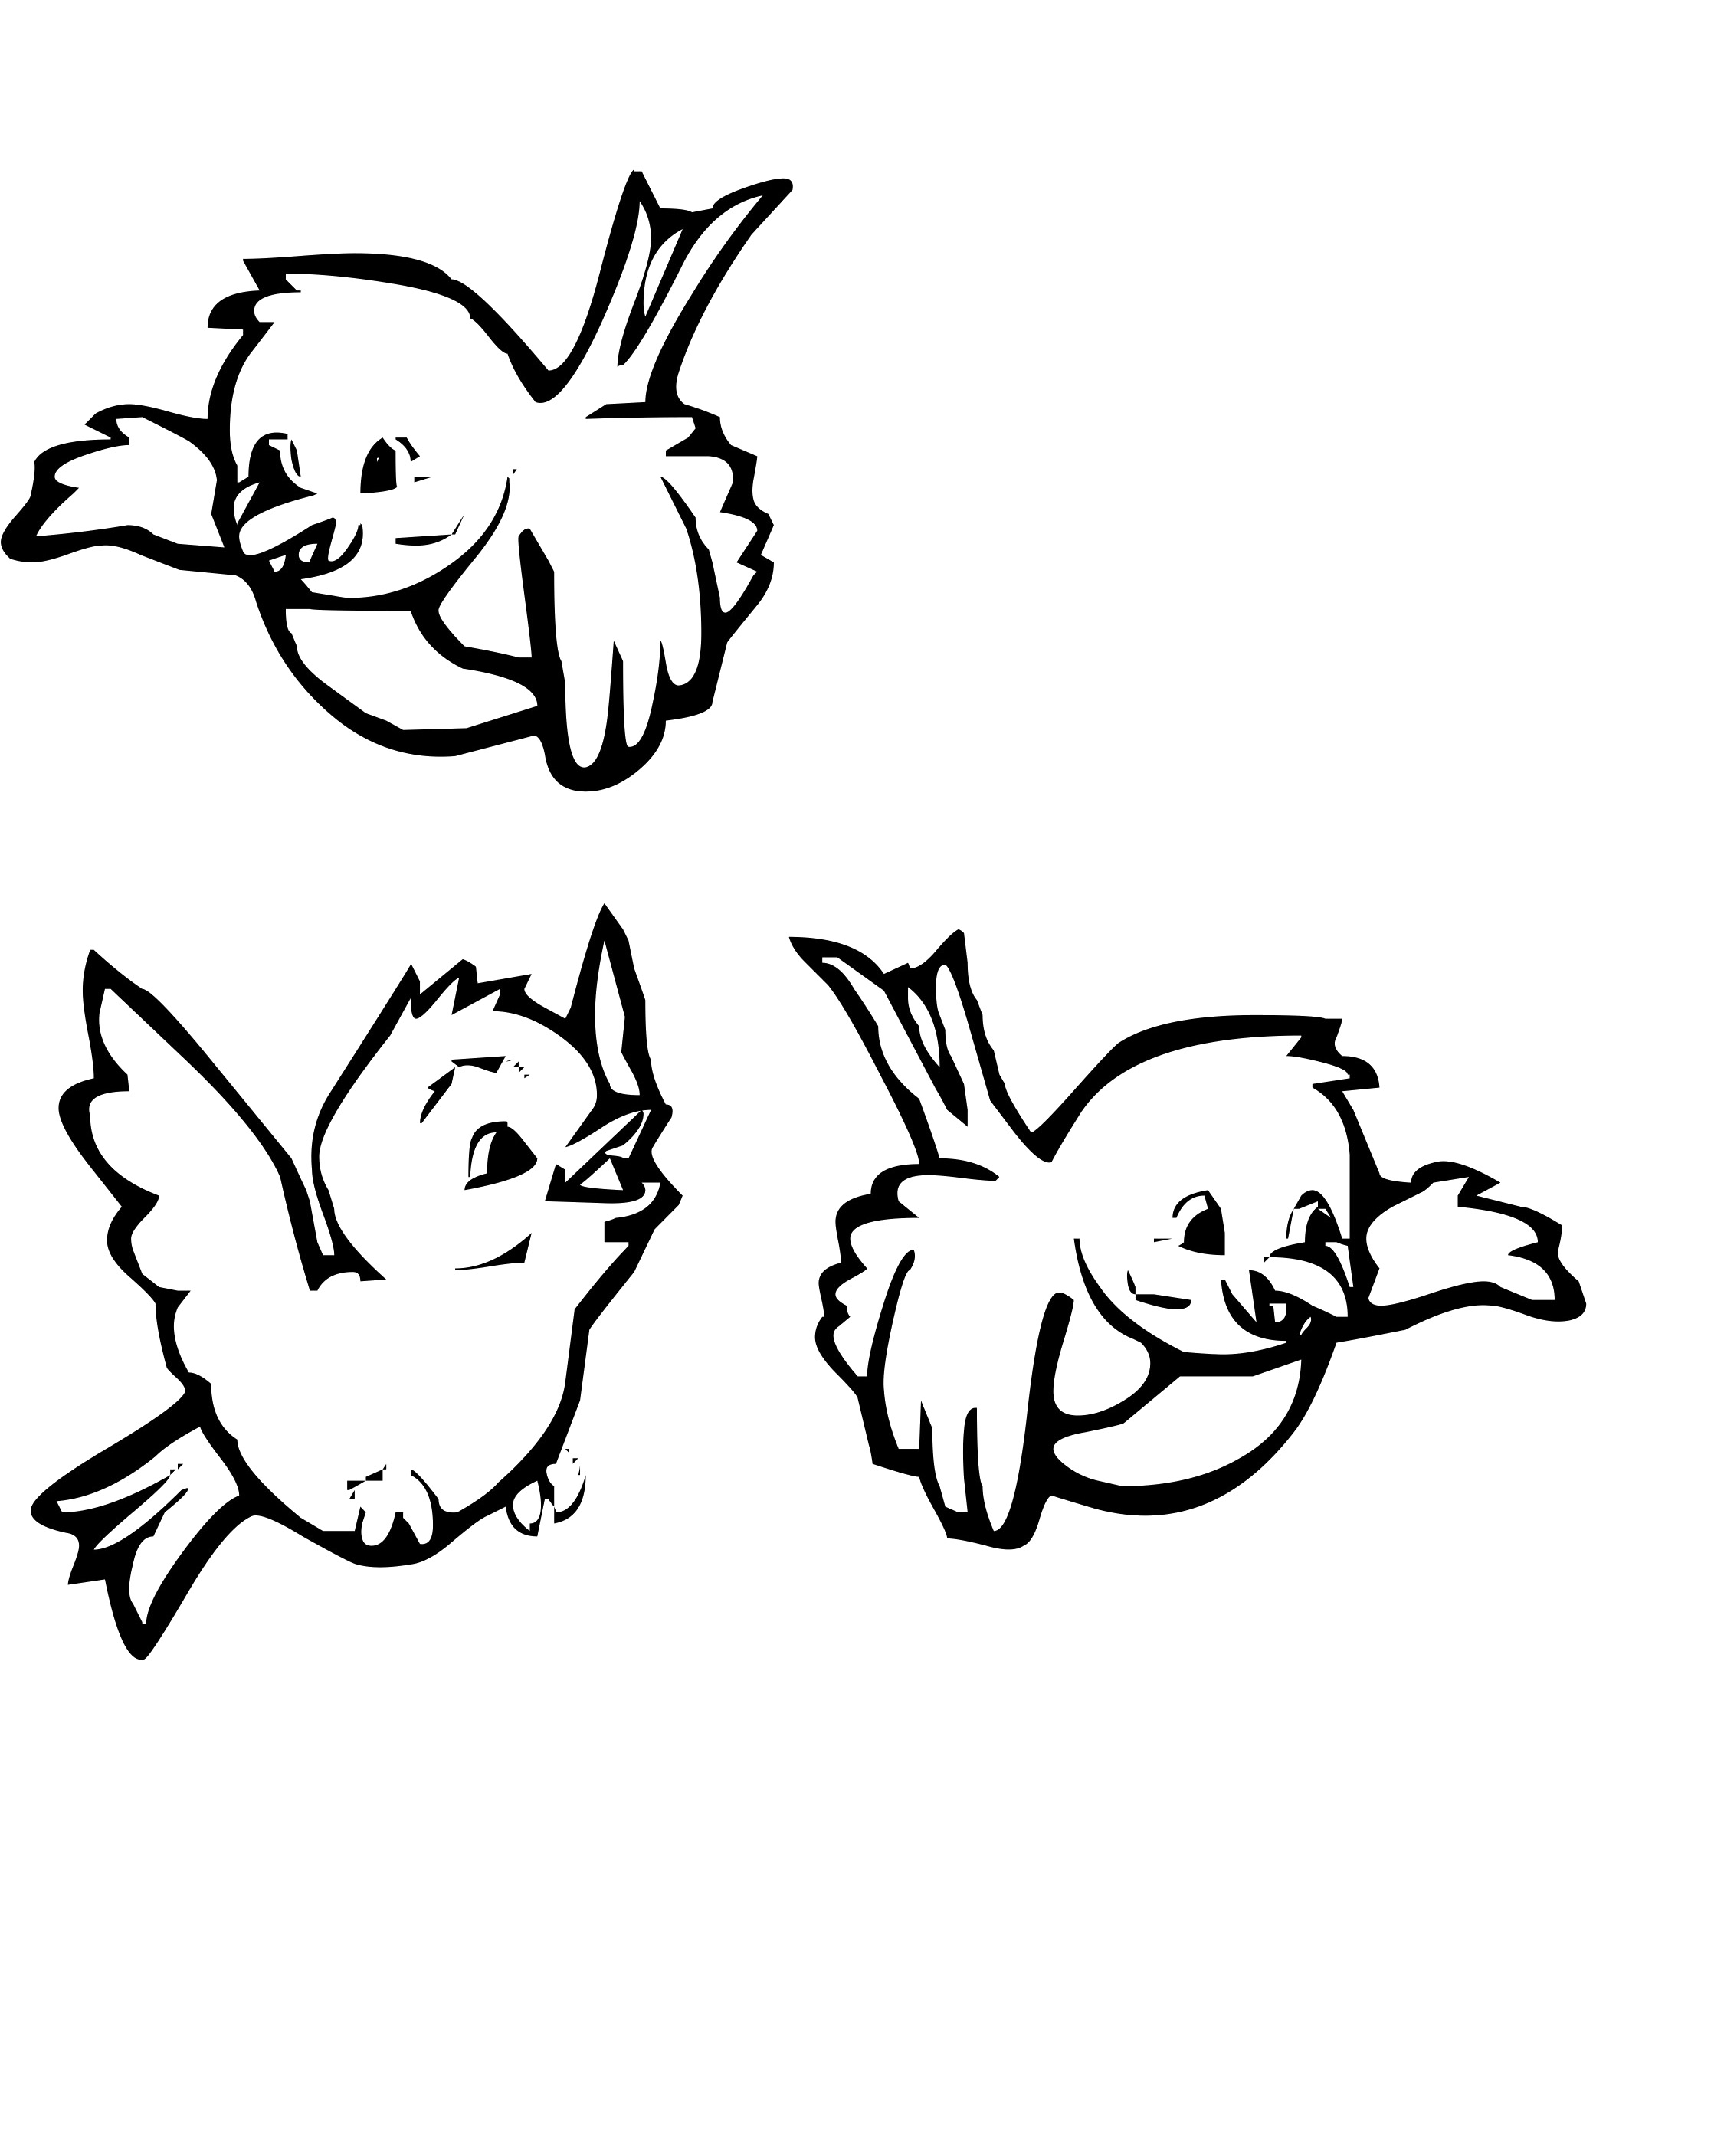 printable pictures of birds free printable tweety bird coloring pages for kids birds of printable pictures